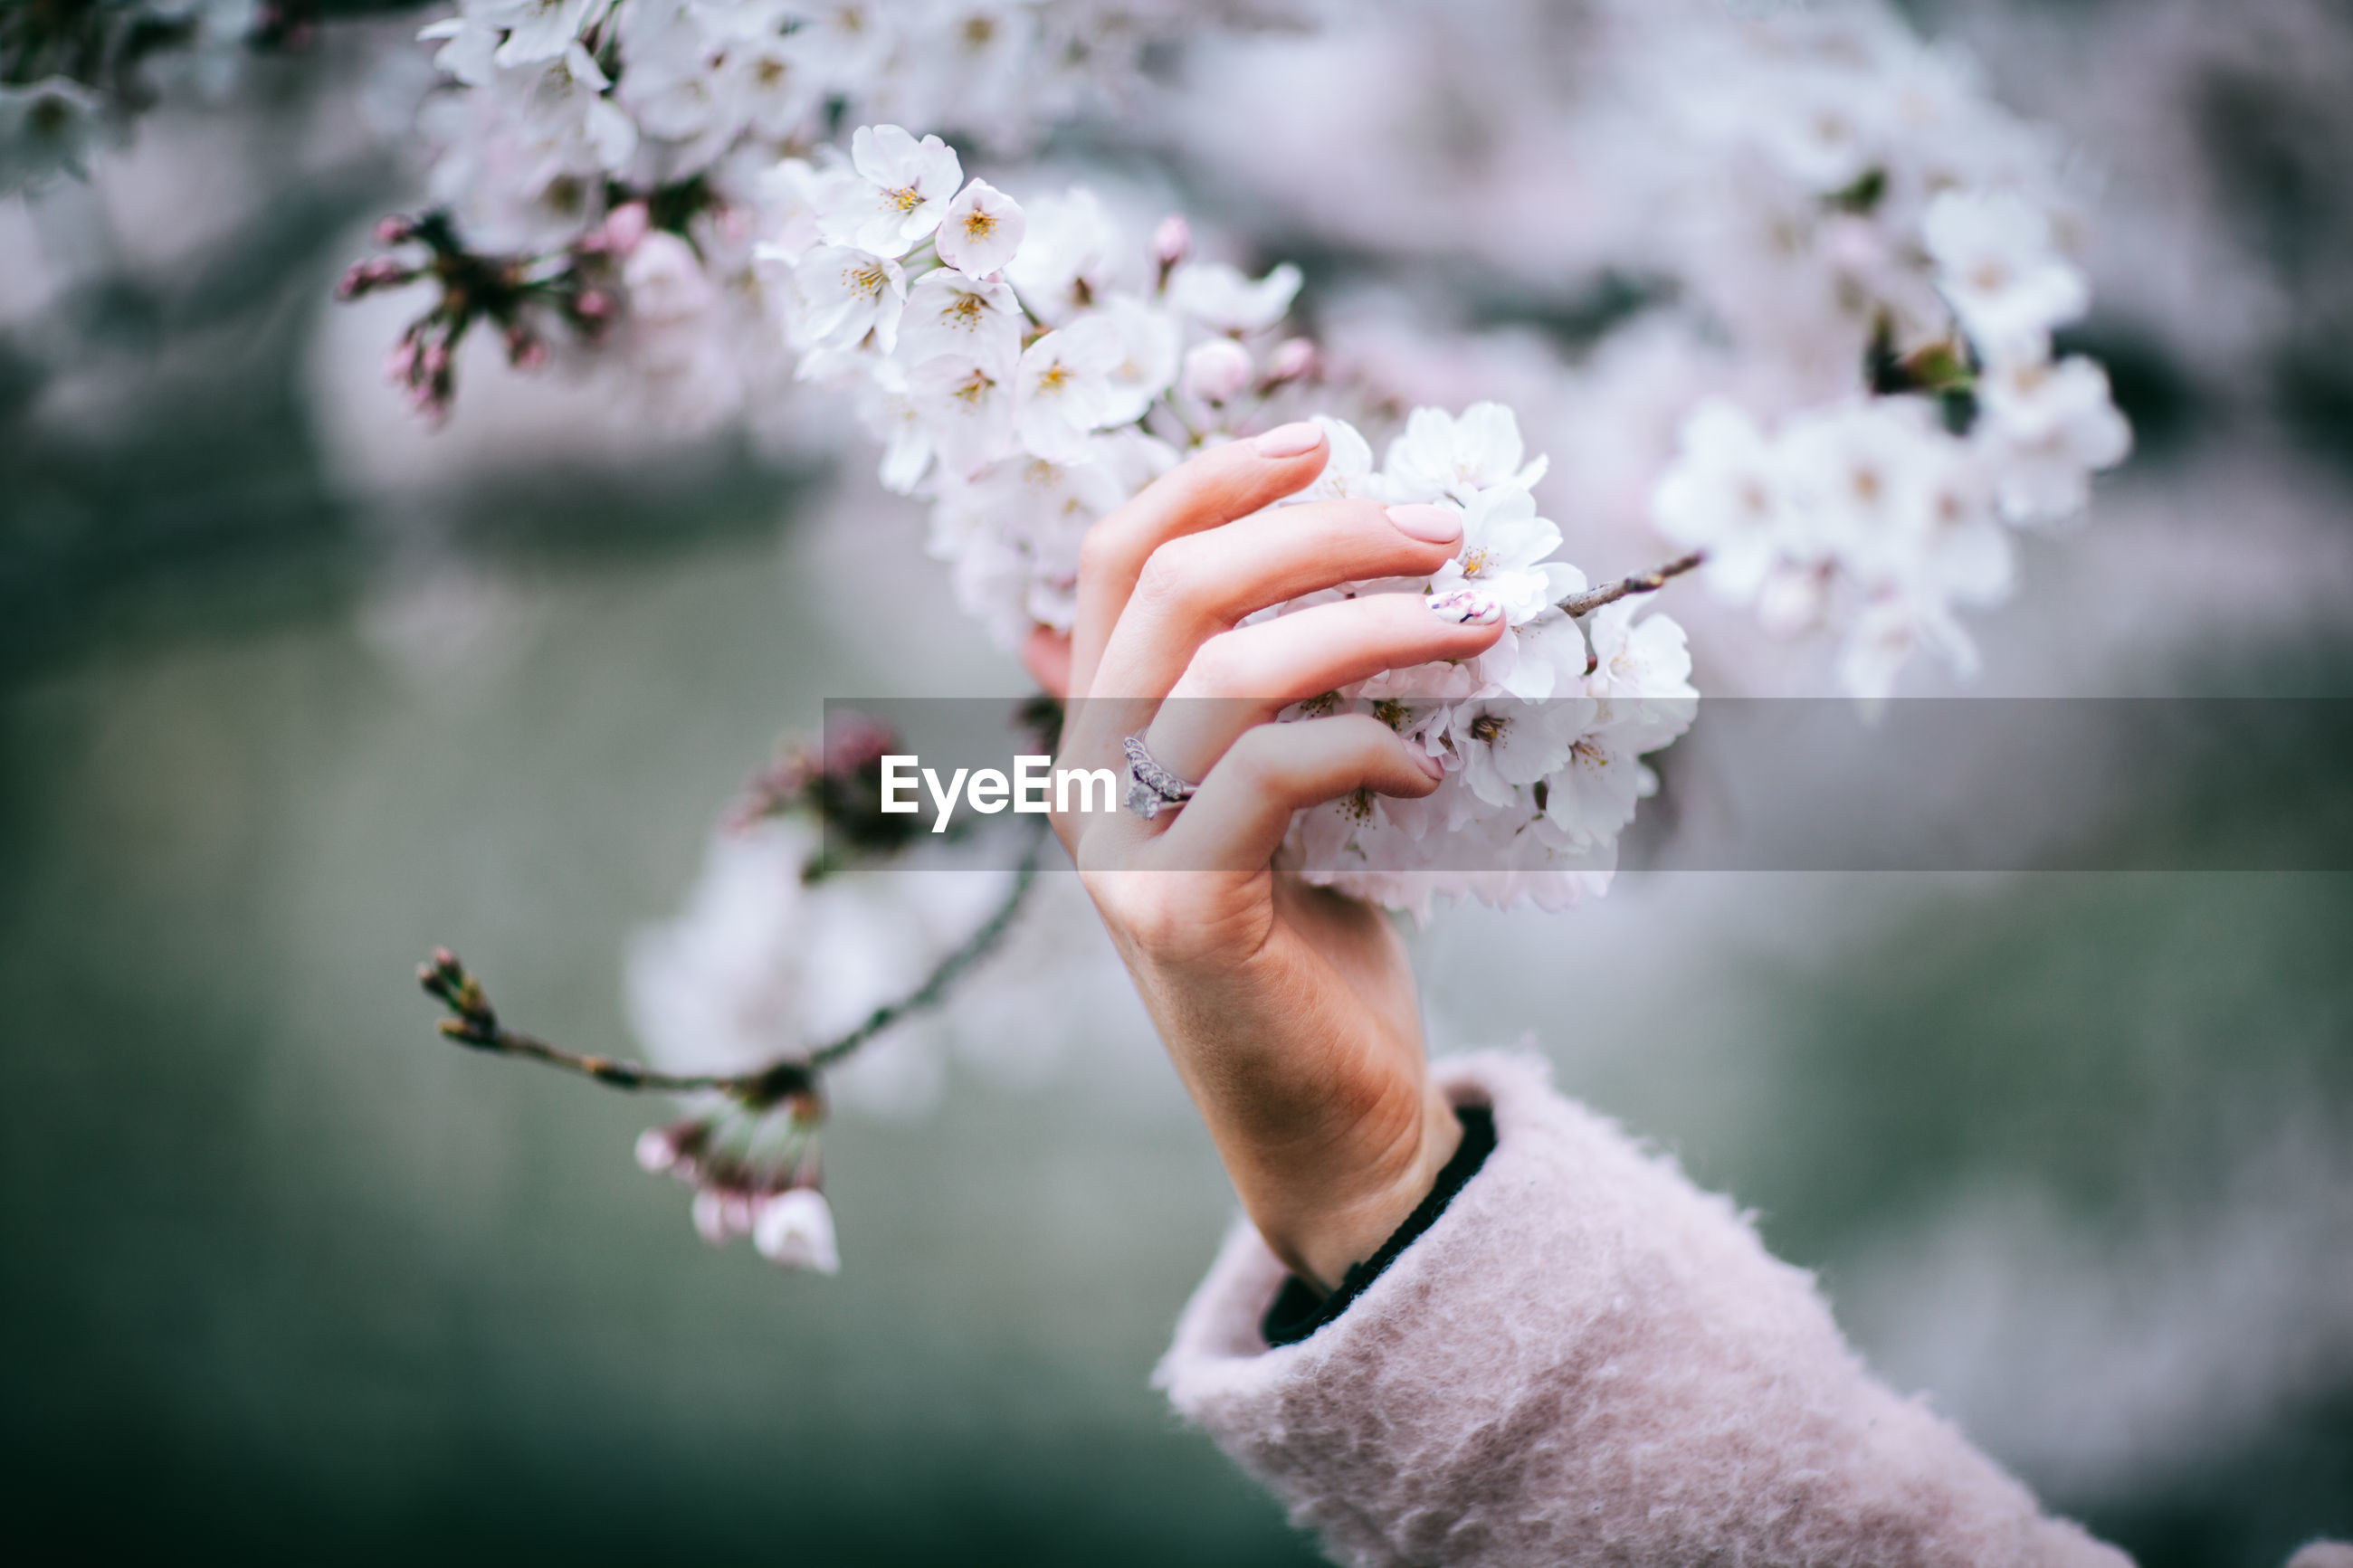 Cropped image of hand holding white flowers on tree